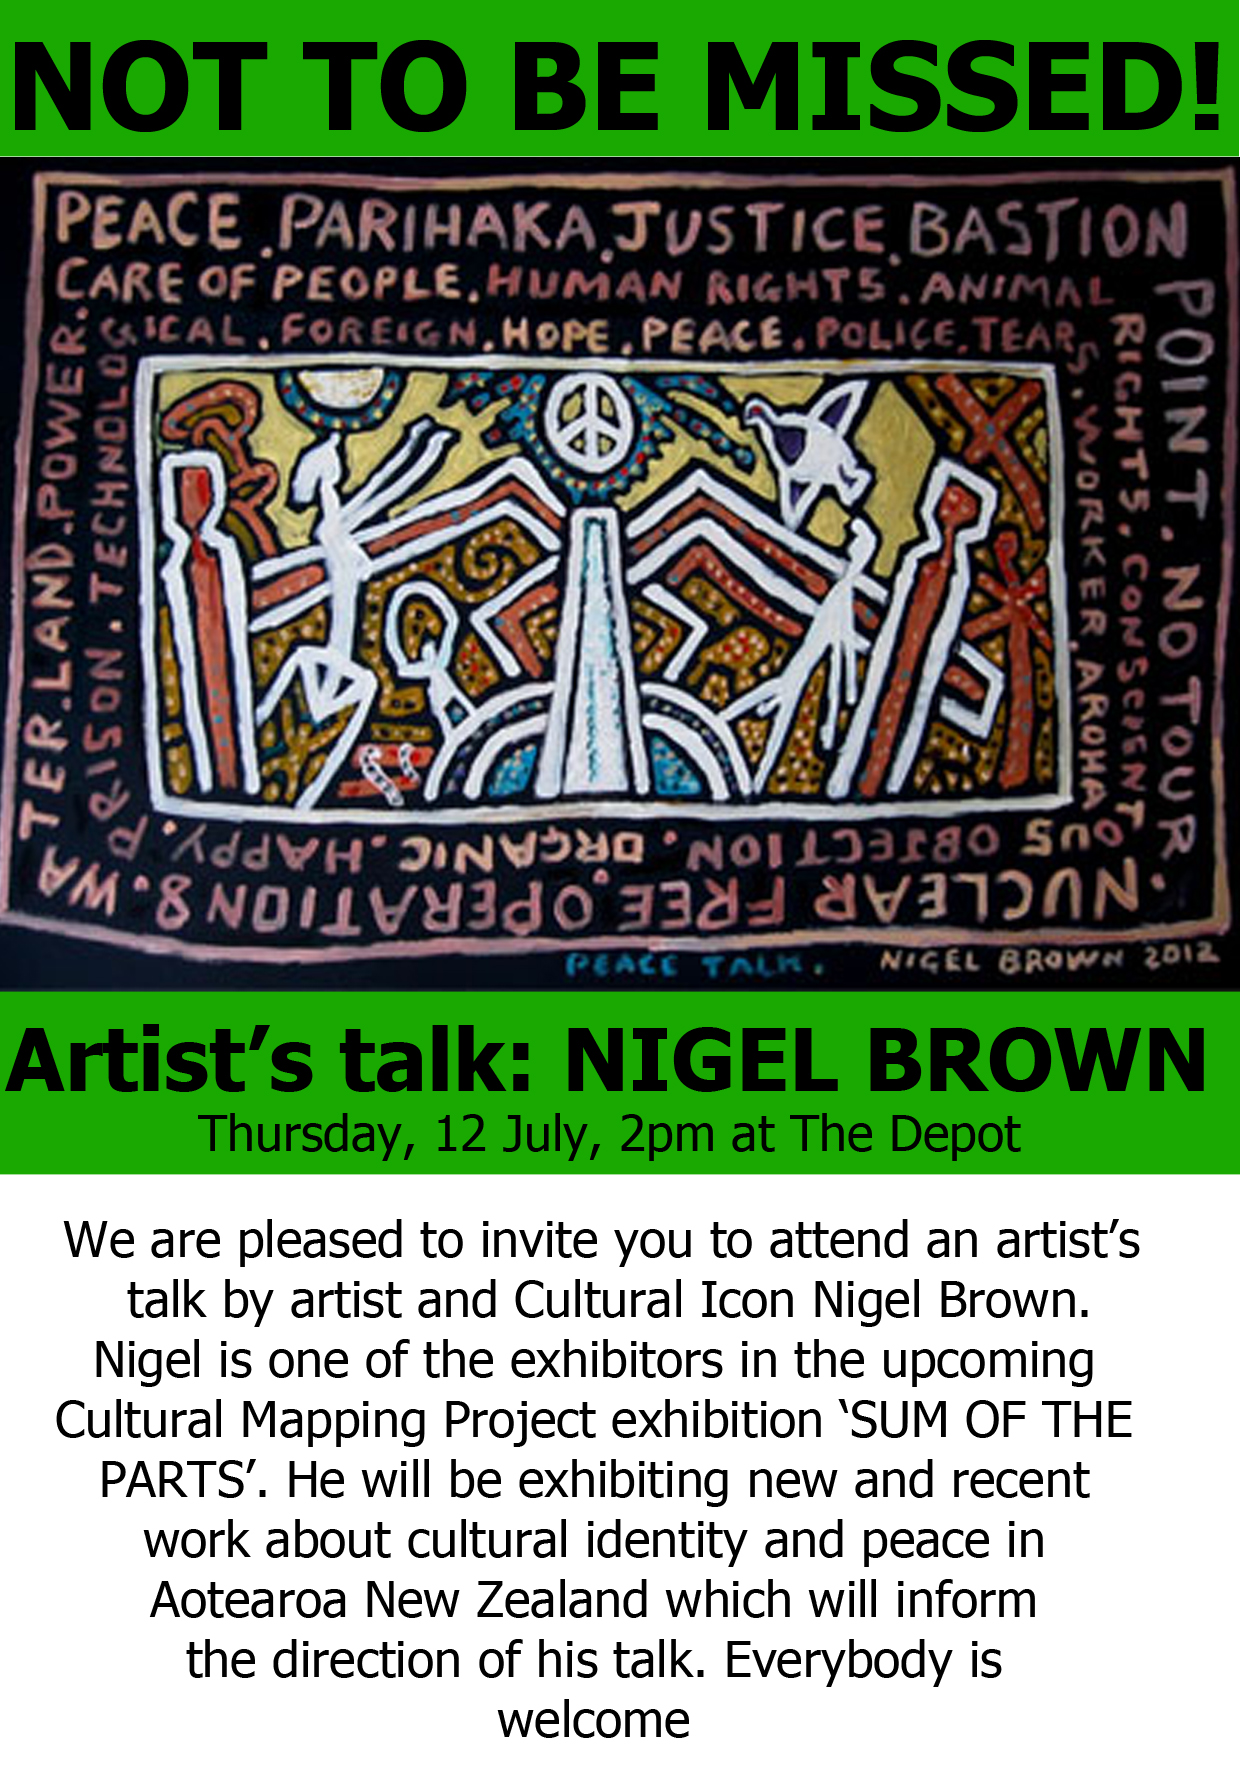 Nigel brown artist's talk Thursday July 12th 2pm at The Depot